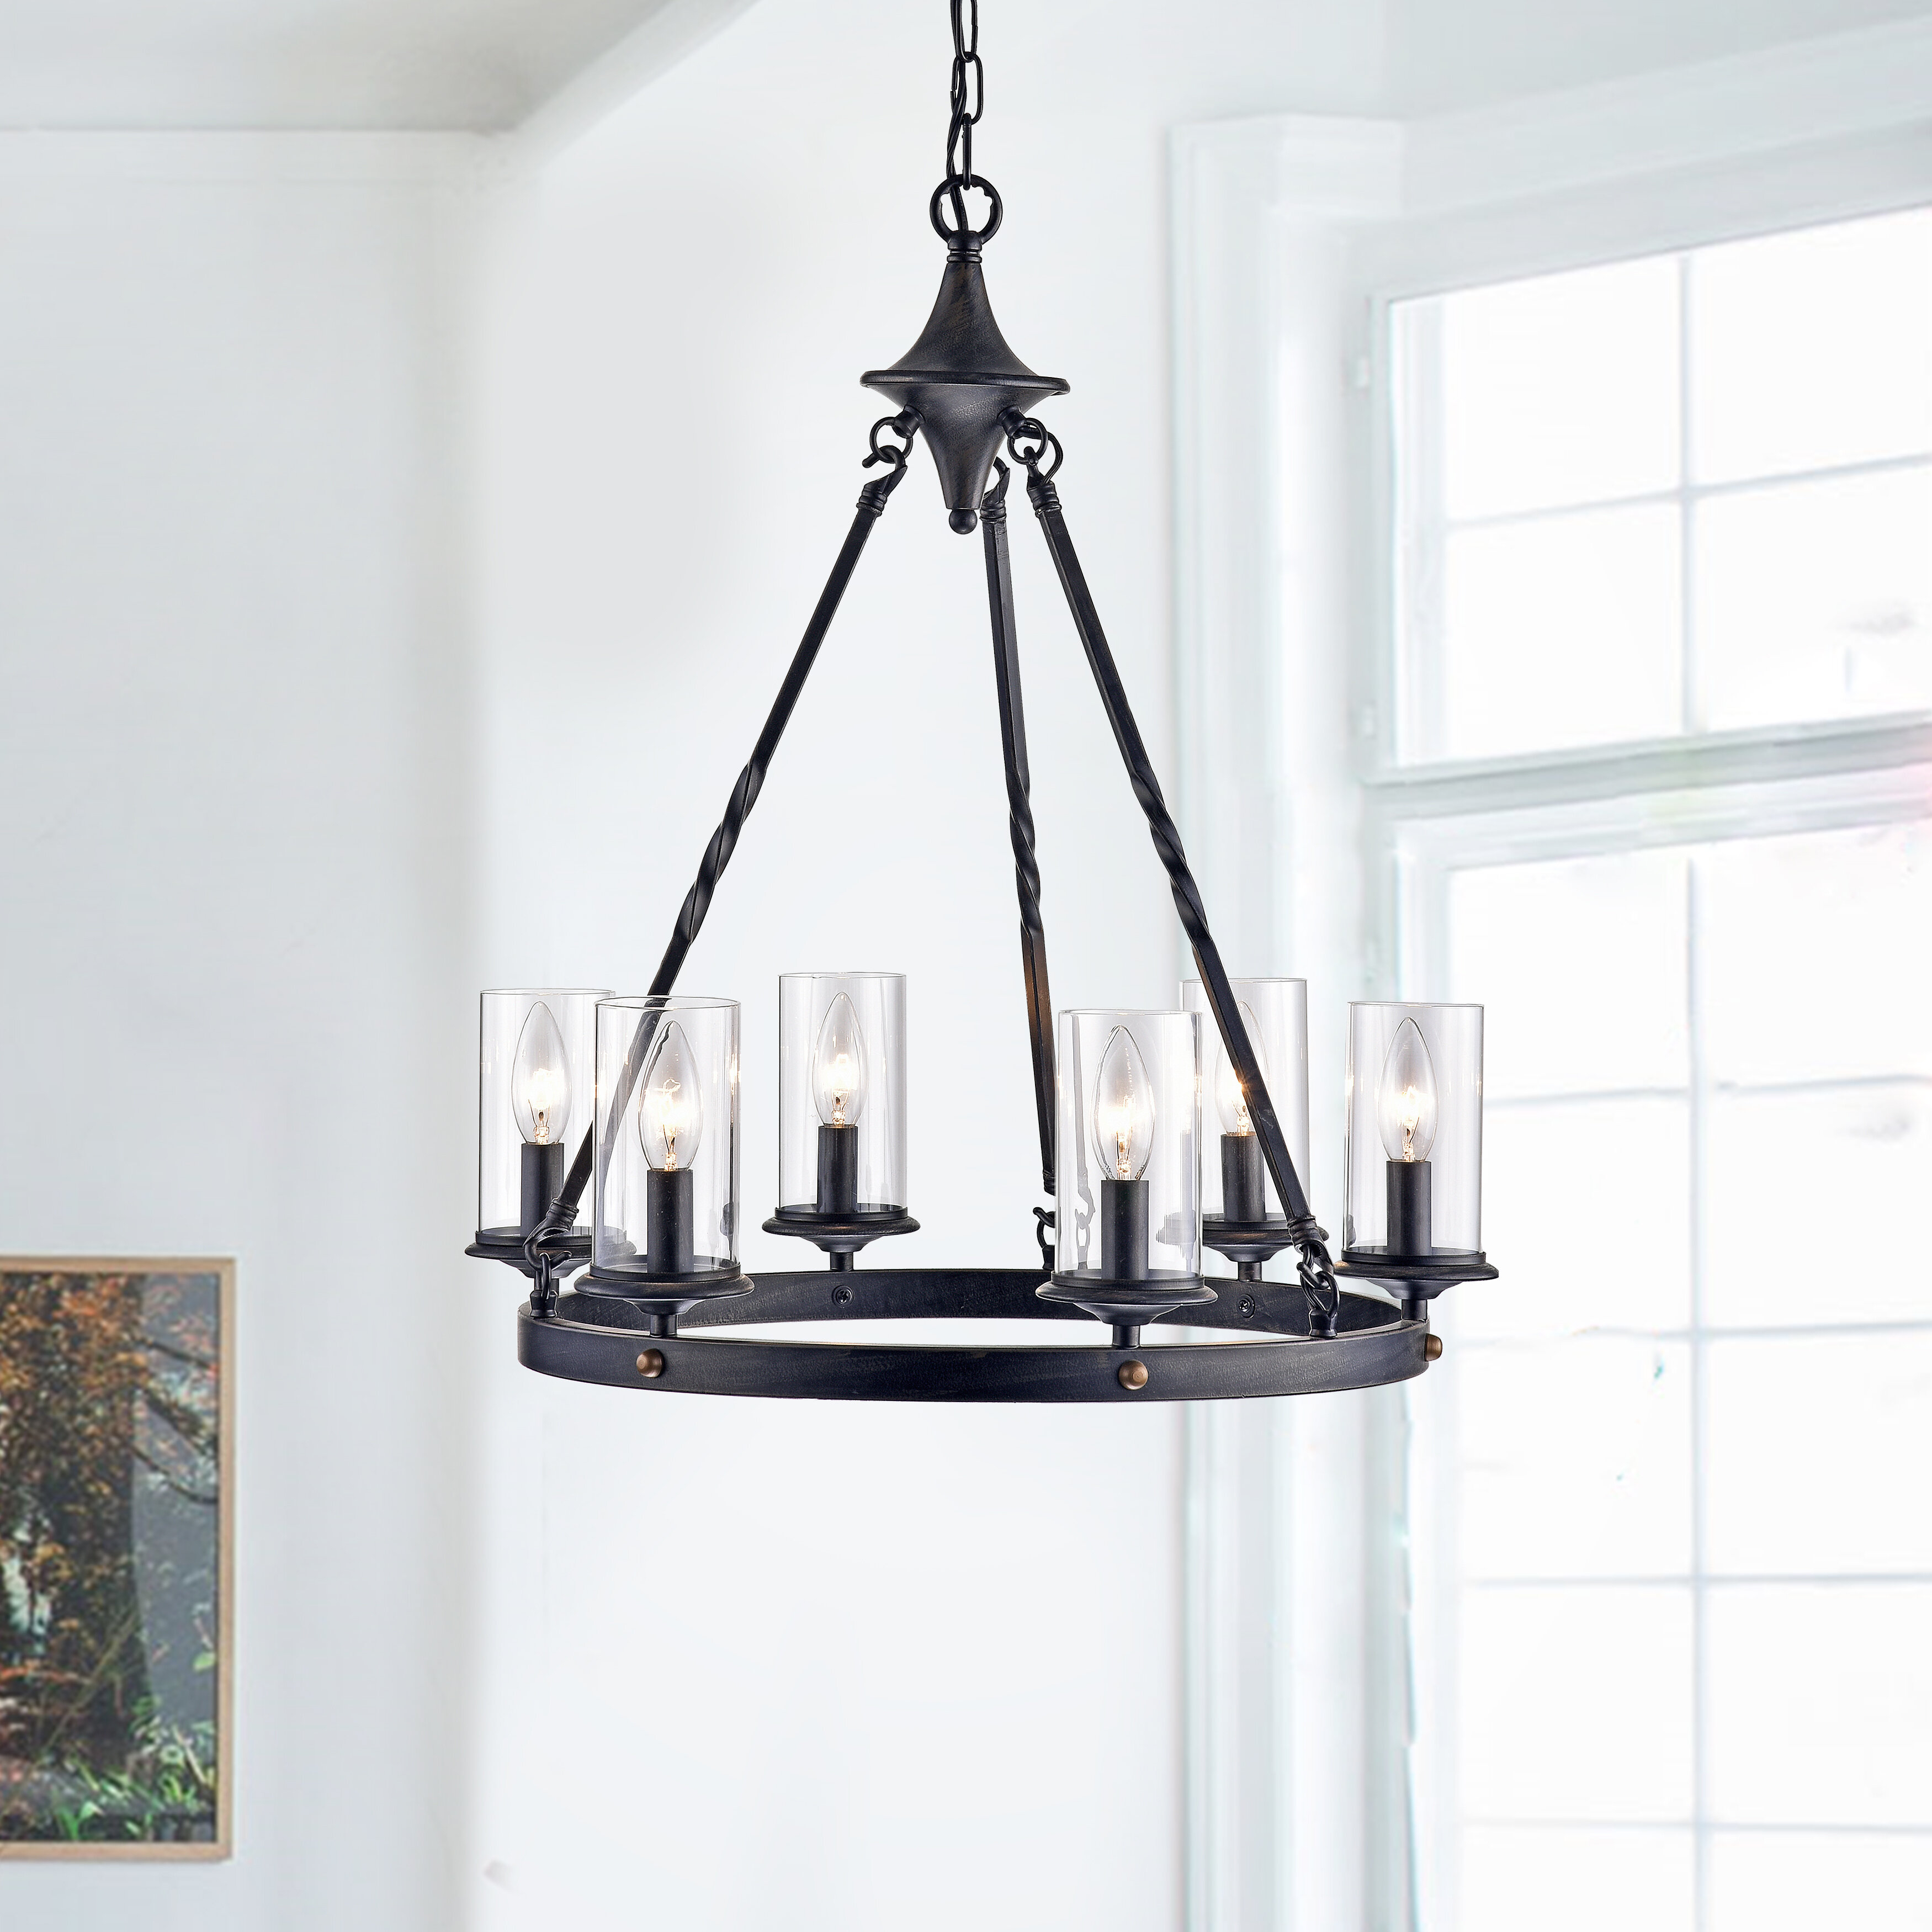 Farmhouse & Rustic Andover Mills Chandeliers | Birch Lane with regard to Suki 5-Light Shaded Chandeliers (Image 9 of 30)